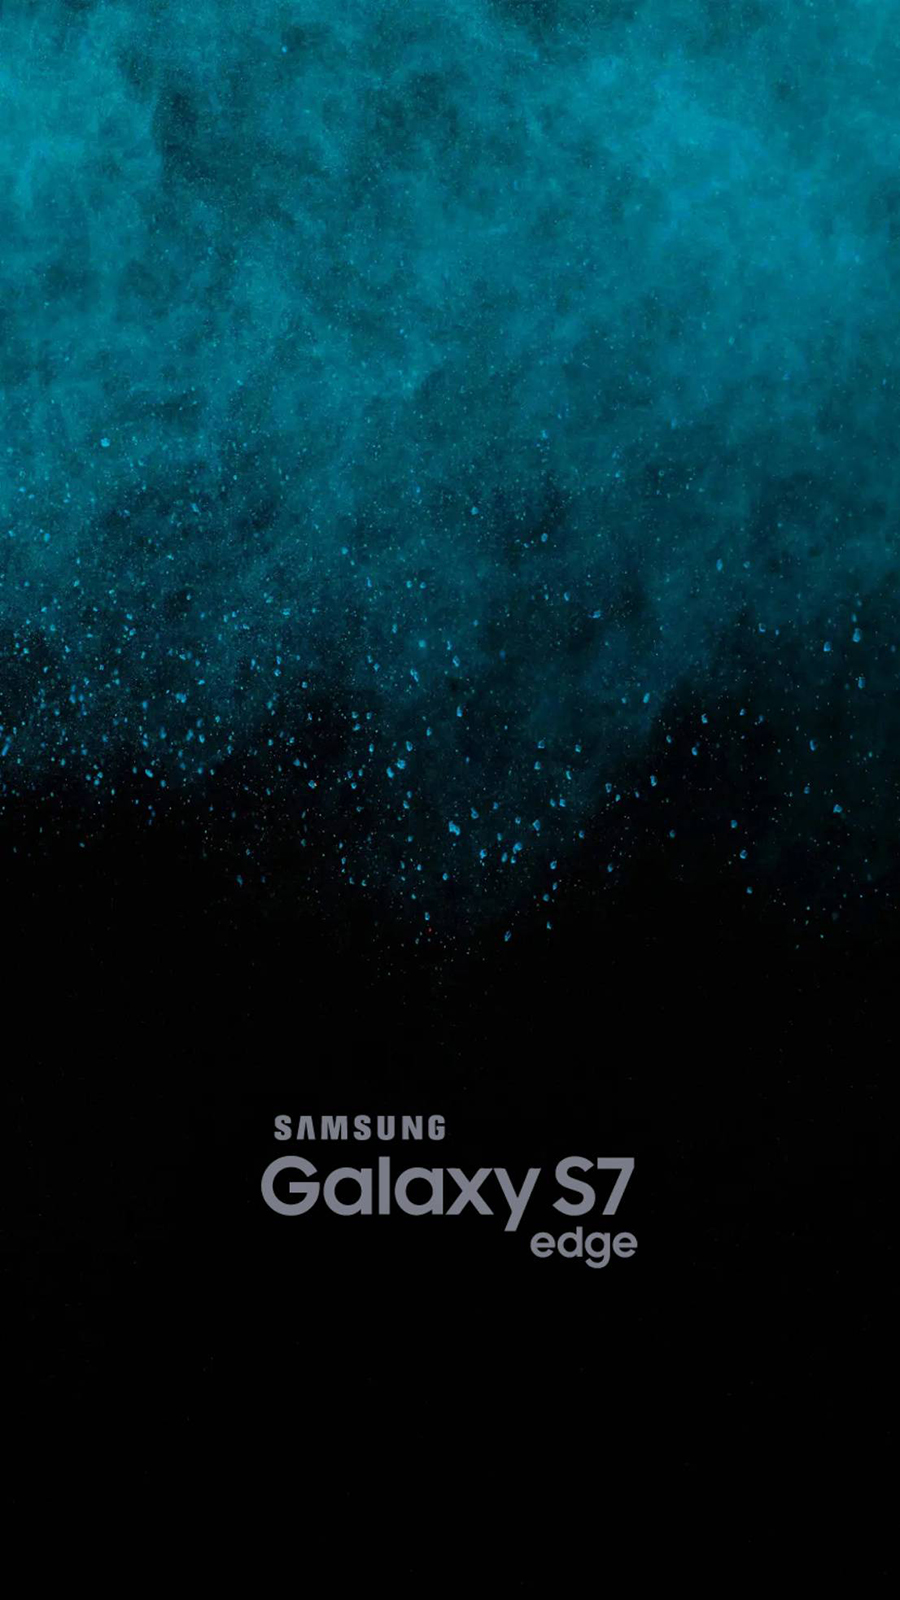 Samsung Galaxy S7 EDGE Wallpapers Now Download